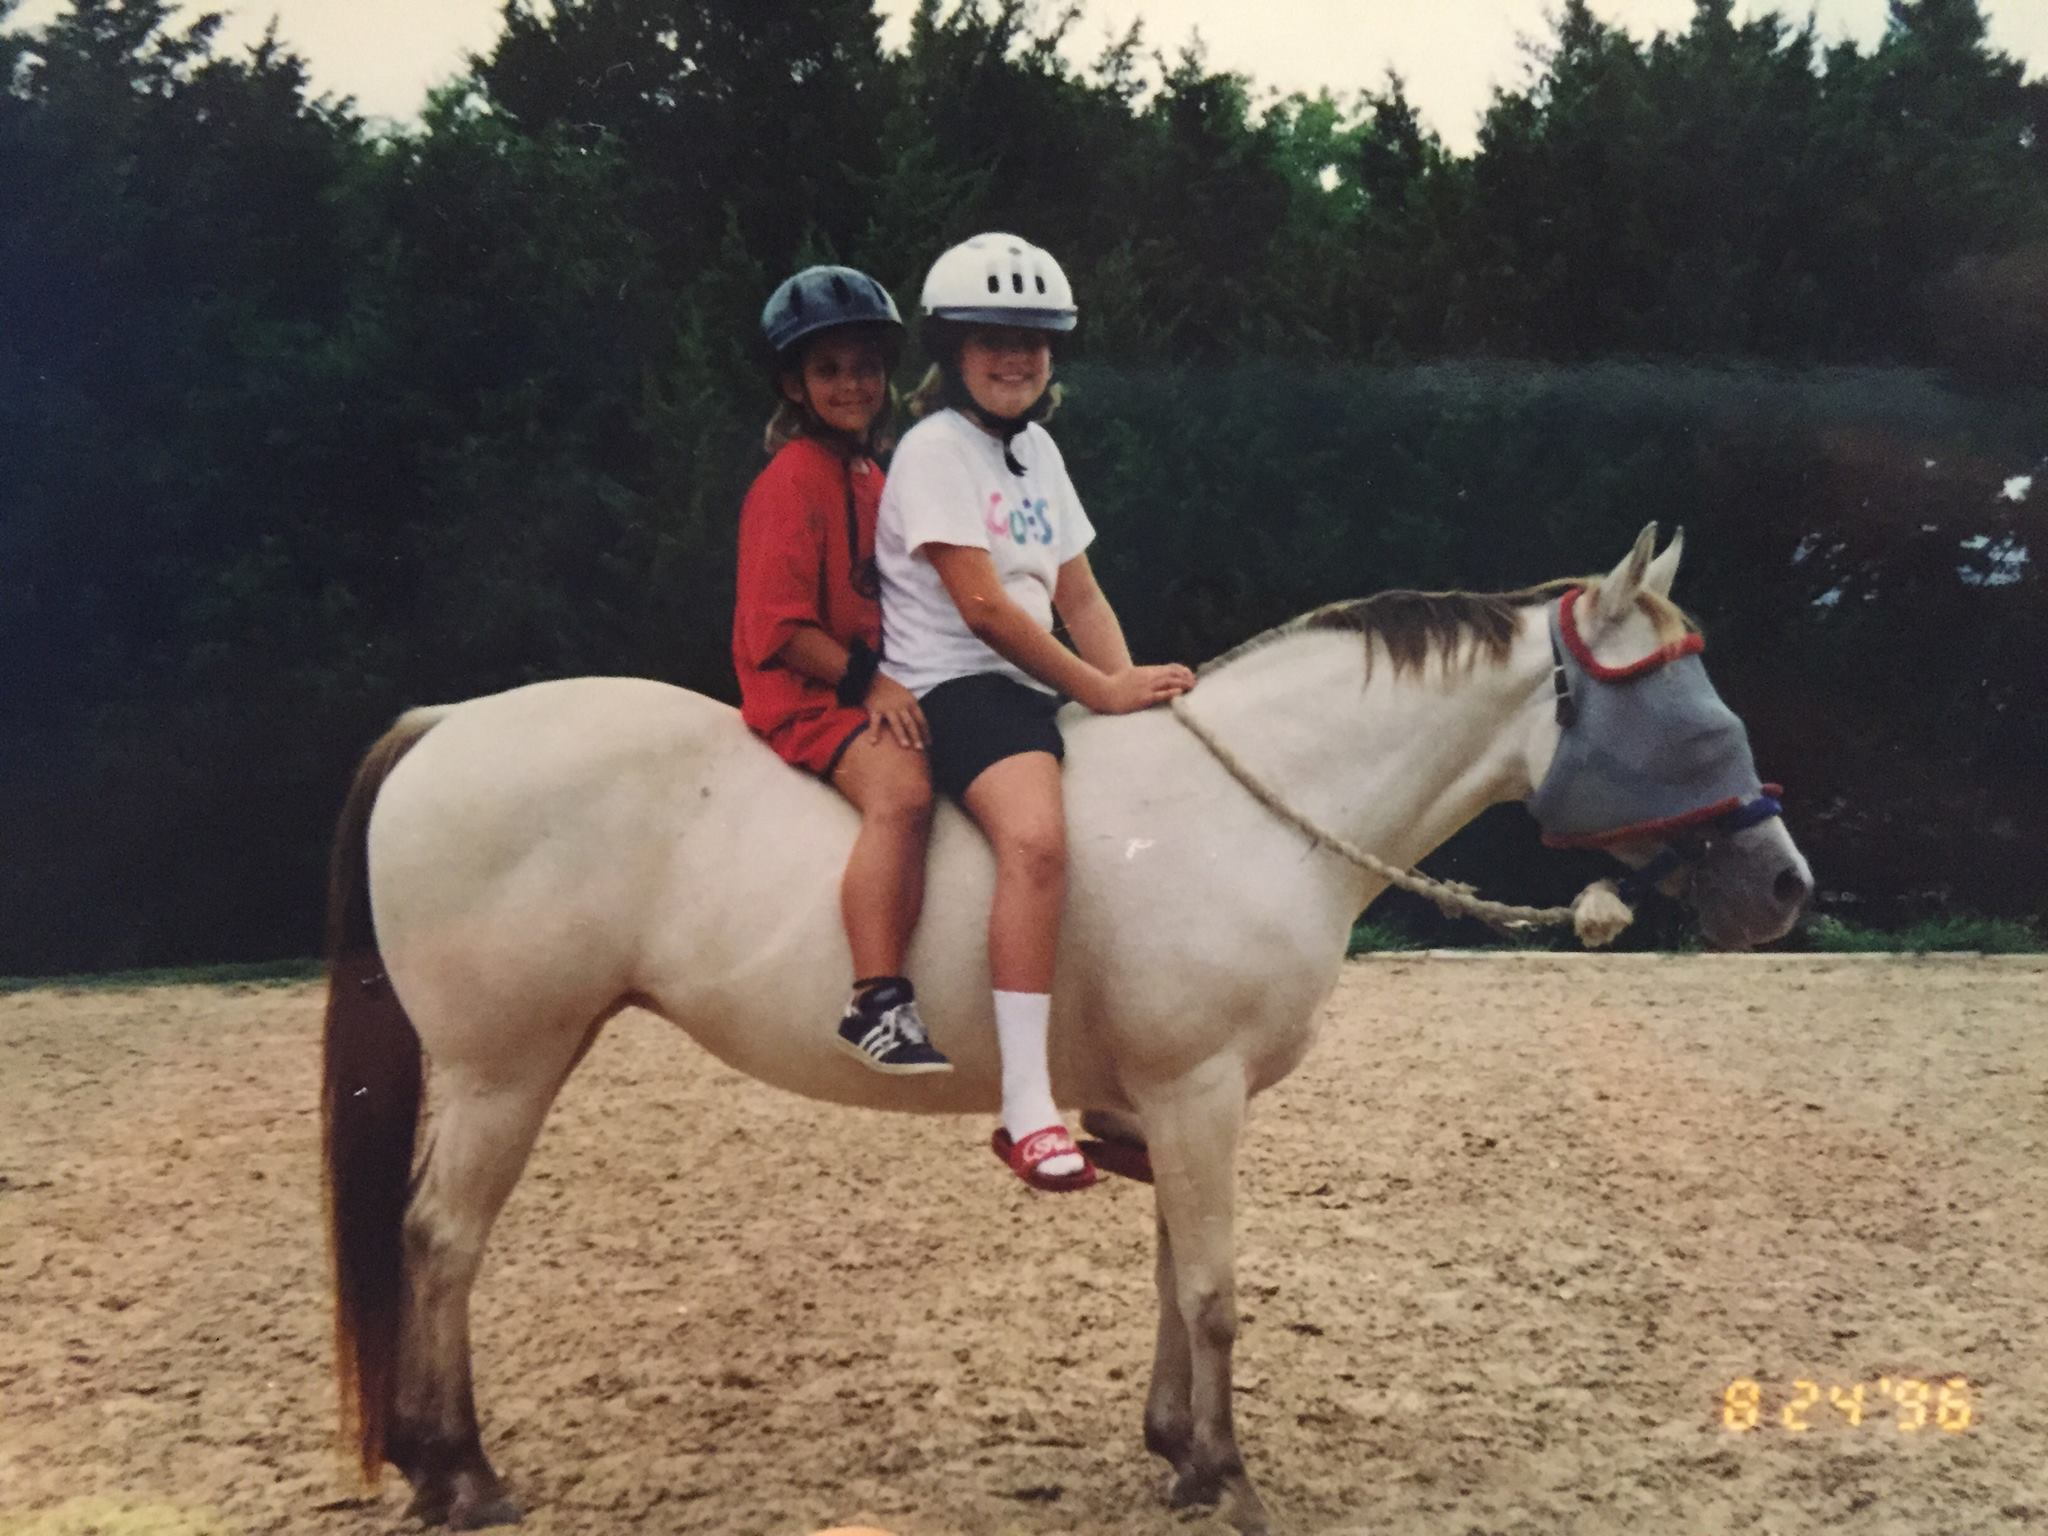 Sarah and her pony, Gingersnap